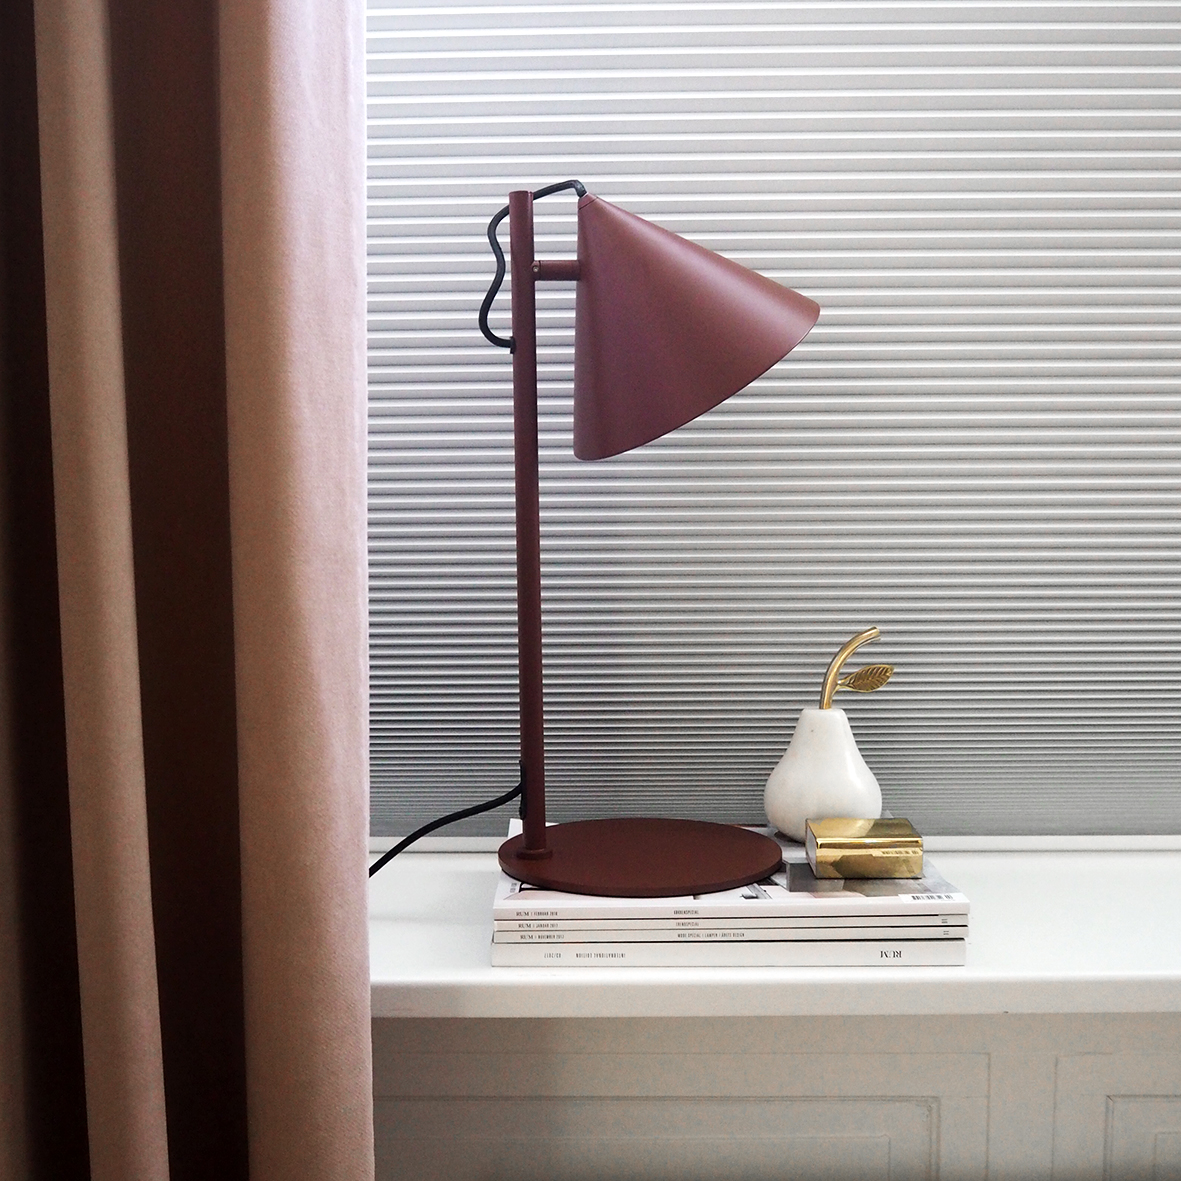 Benjamin table lamp dust red matt - lifestyle HM 2493.jpg